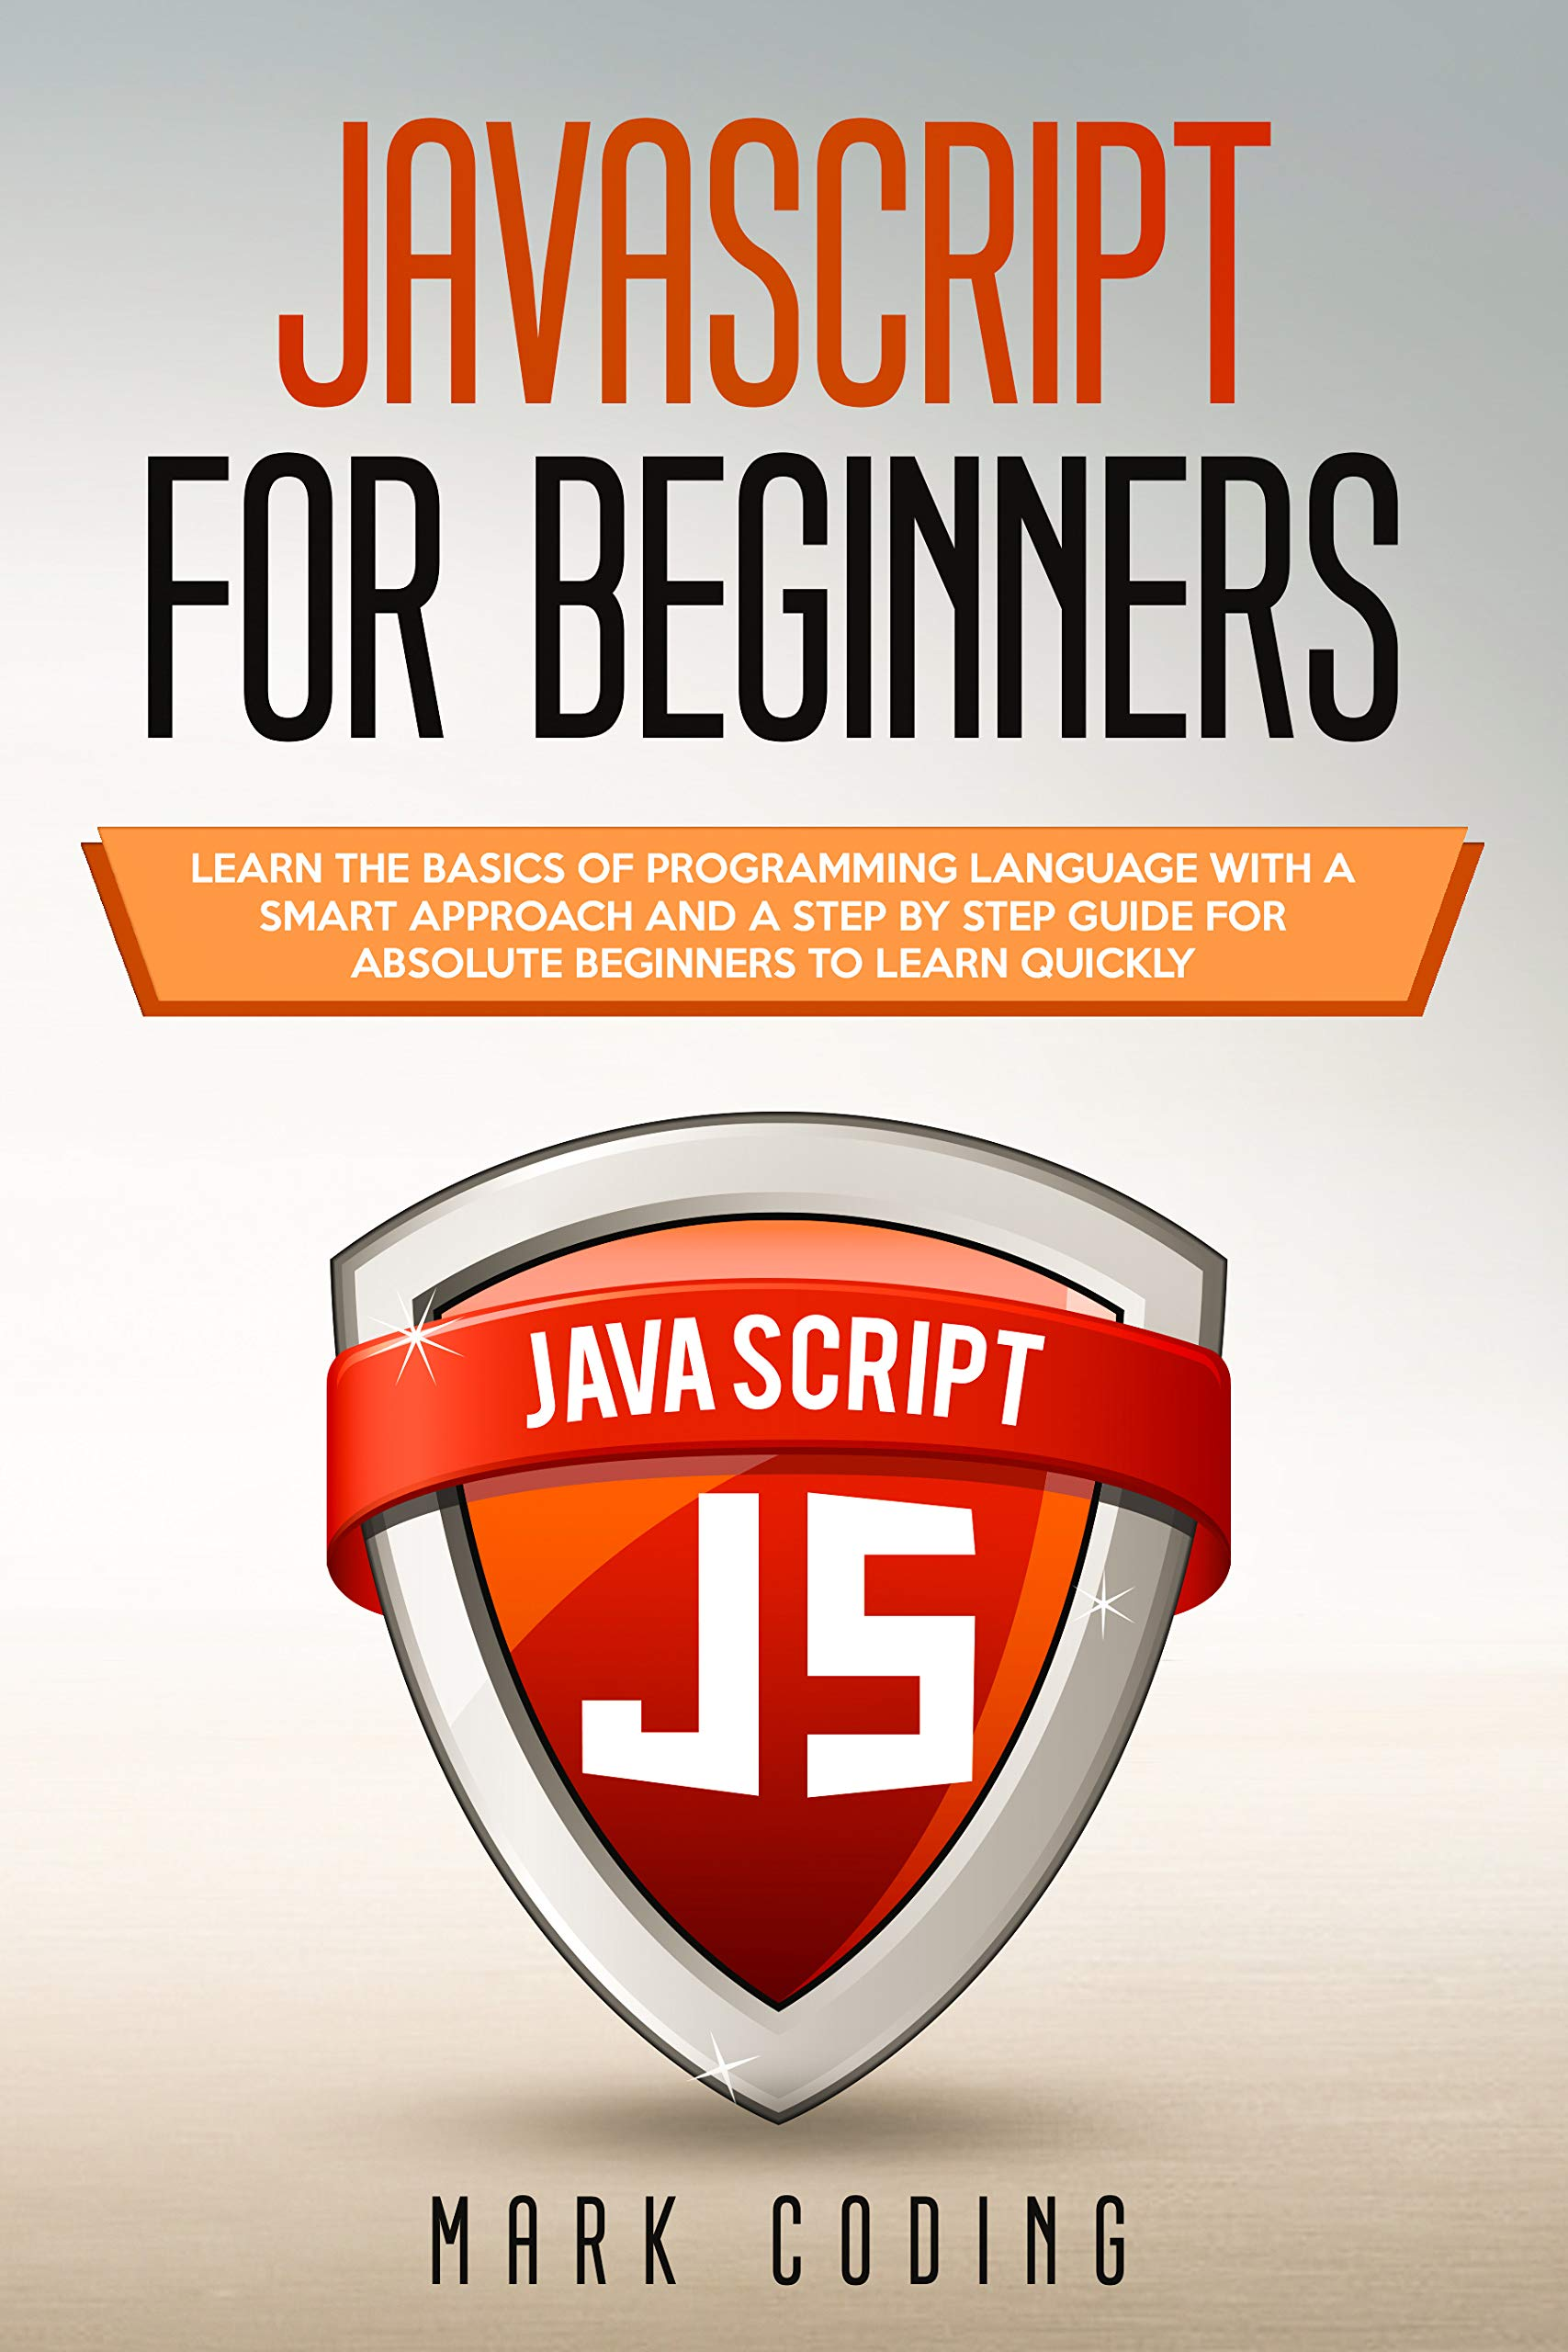 Javascript for Beginners: Learn the Basics of Programming Language with a Smart Approach and a Step by Step Guide for Absolute Beginners to Learn Quickly